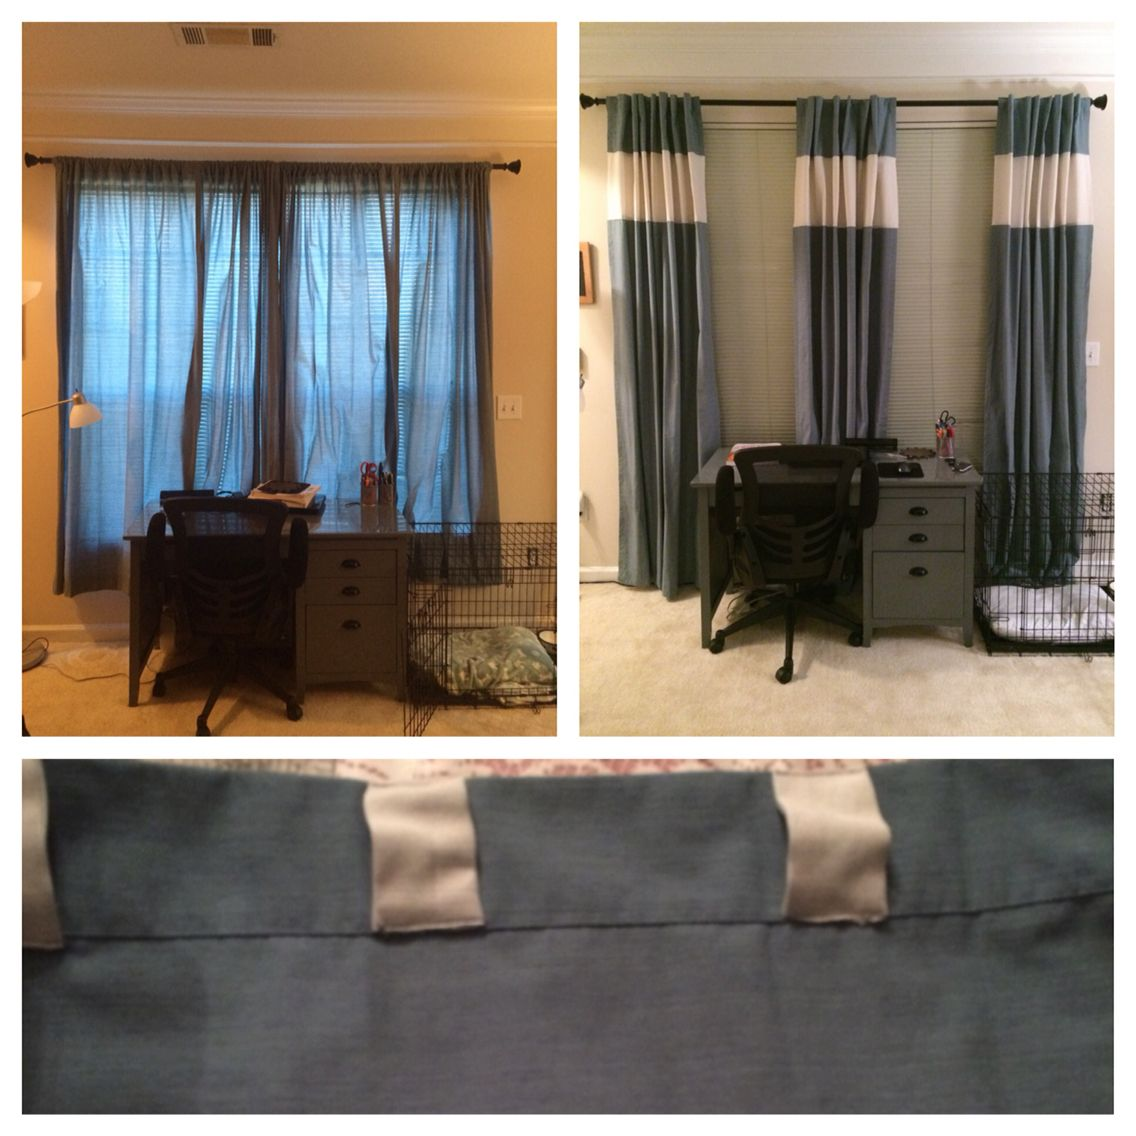 Curtain Redo Curtains Too Short Add An Extra Panel In The To Lengthen Them Added Strips Of Fabric Top Create That Pleat